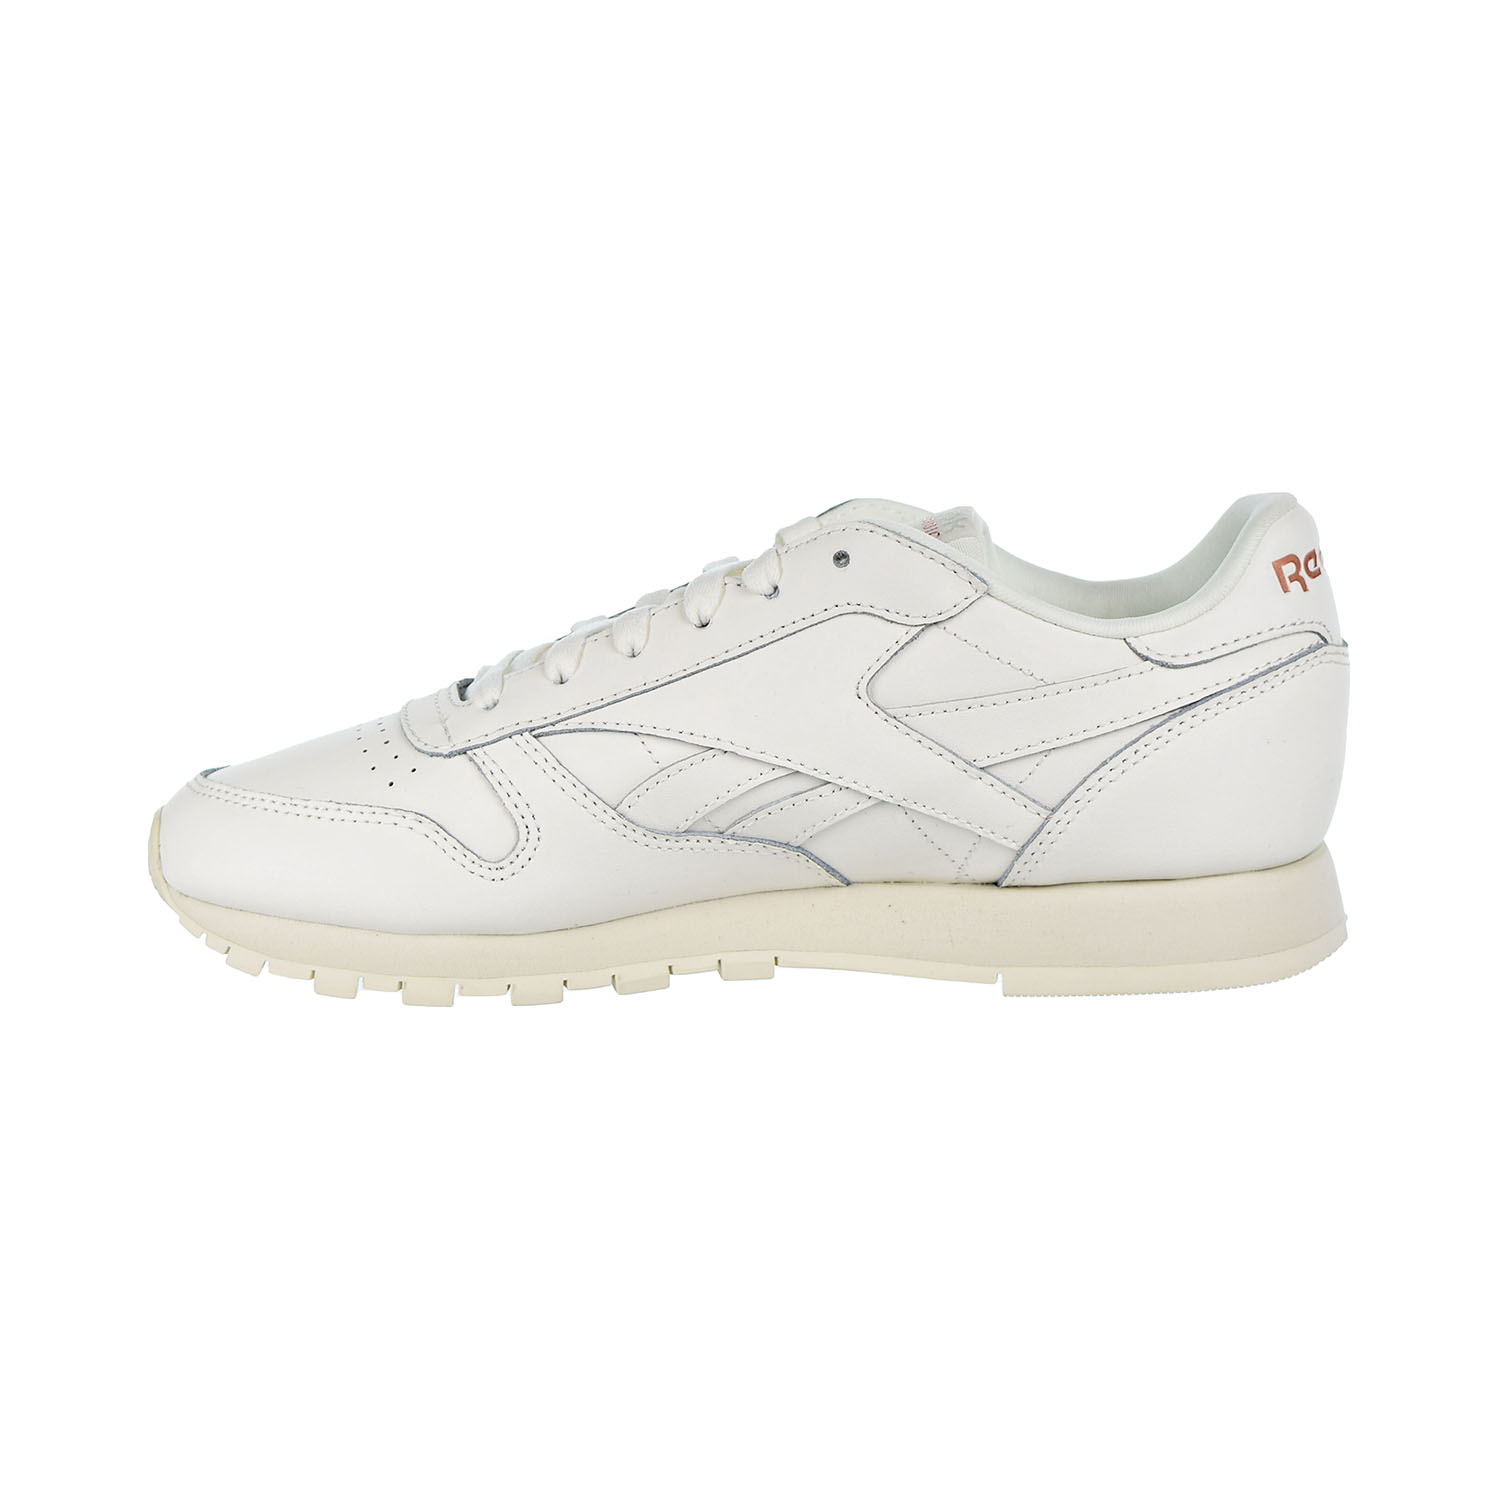 4ba4b06701f Reebok - Reebok Classic Leather Women s Shoes Chalk Rose Gold Paper White  dv3762 - Walmart.com